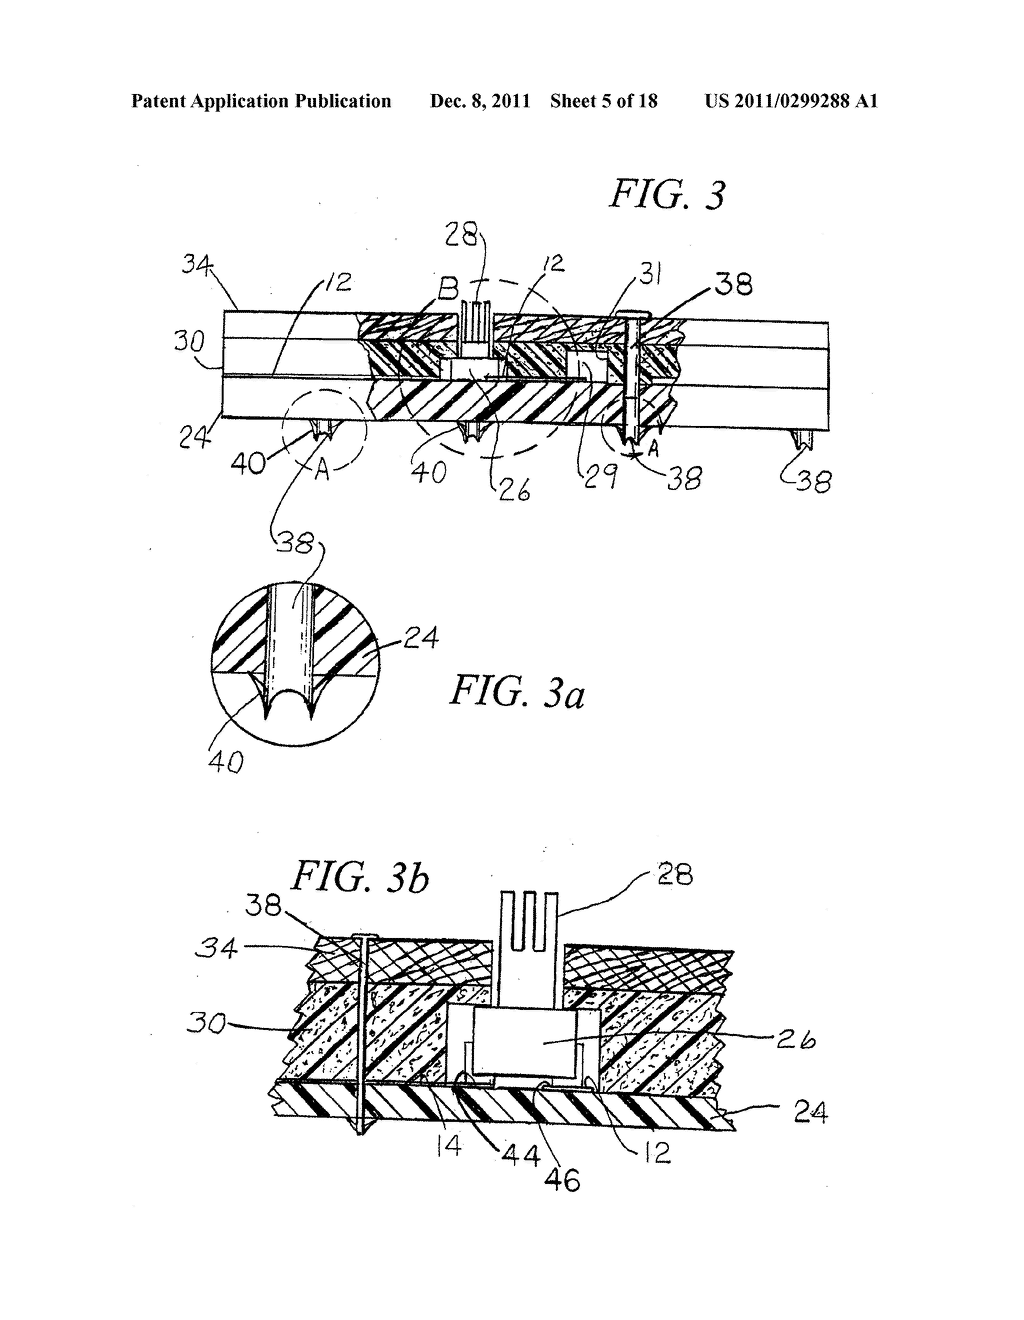 Solder and Lead Free Electronic Circuit and Method of Manufacturing Same - diagram, schematic, and image 06